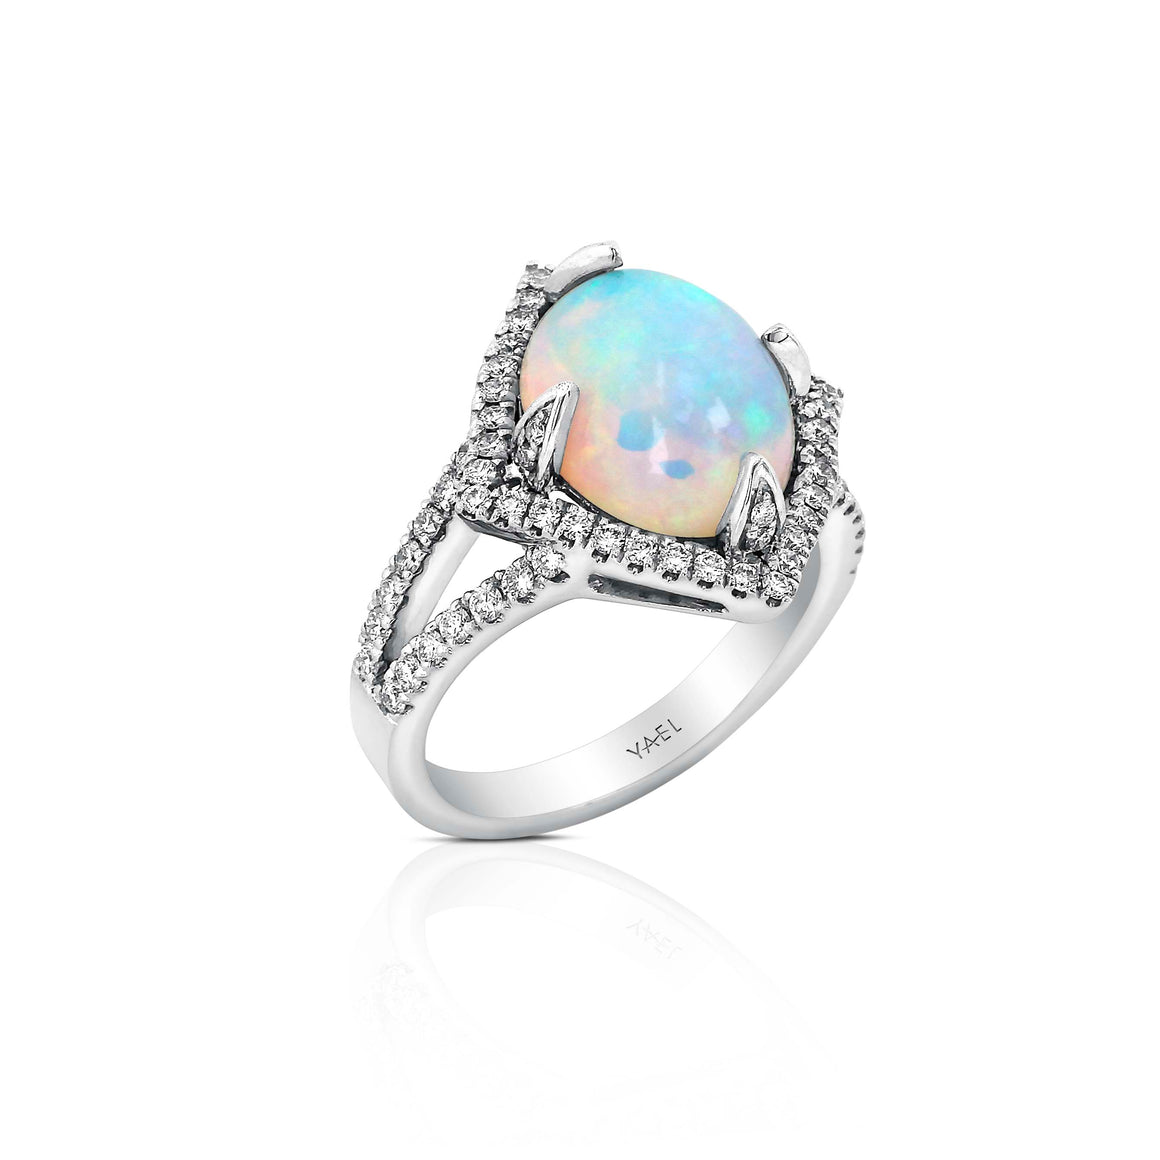 Yael 18k White Gold, Opal and Diamond Ring